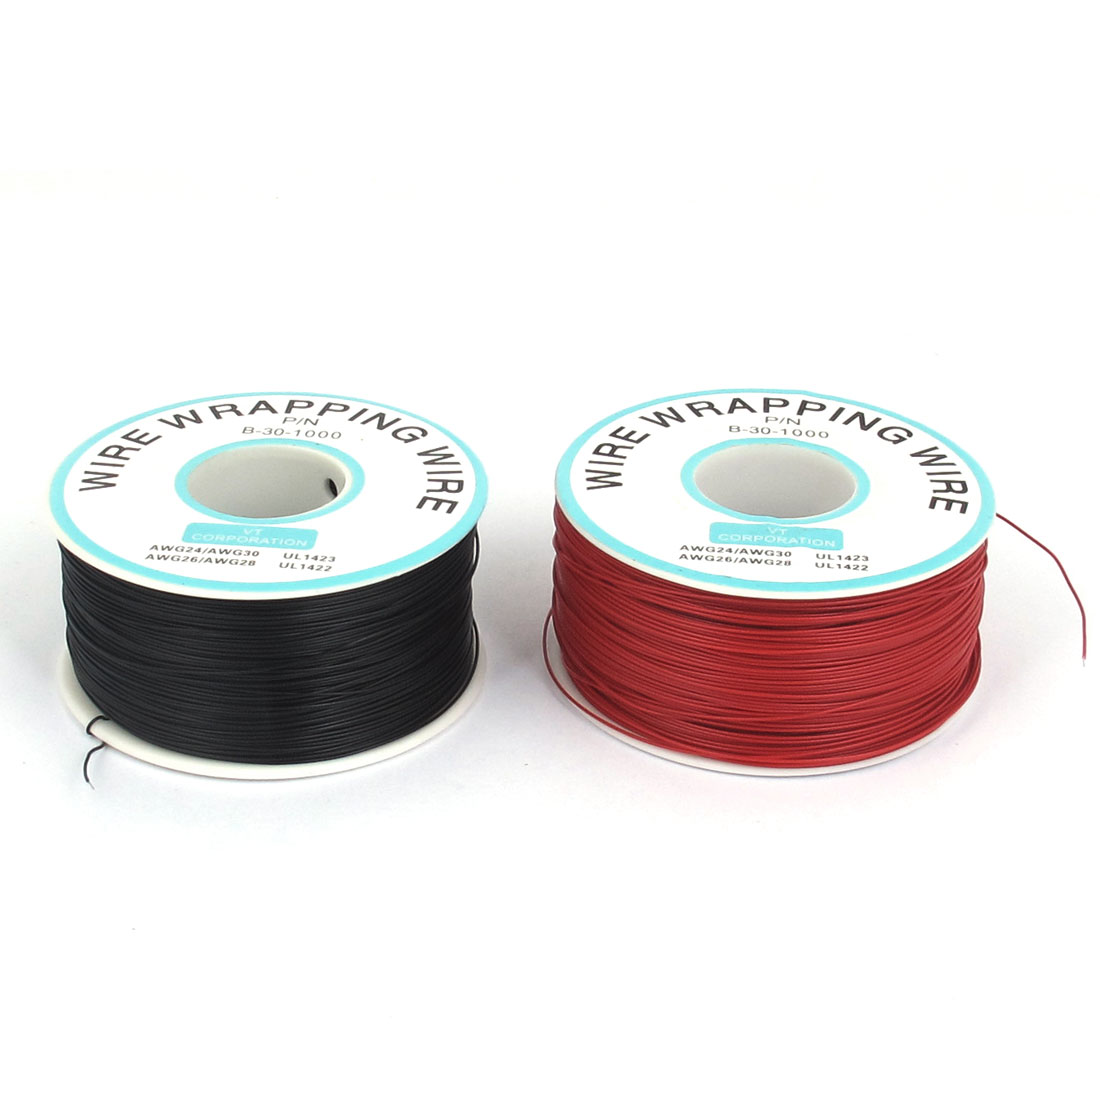 2 Pcs 305M P/N B-30-1000 30AWG PCB Solder Black Red Flexible 0.25mm Dia Copper Tin Plated Wire-Wrapping Wires